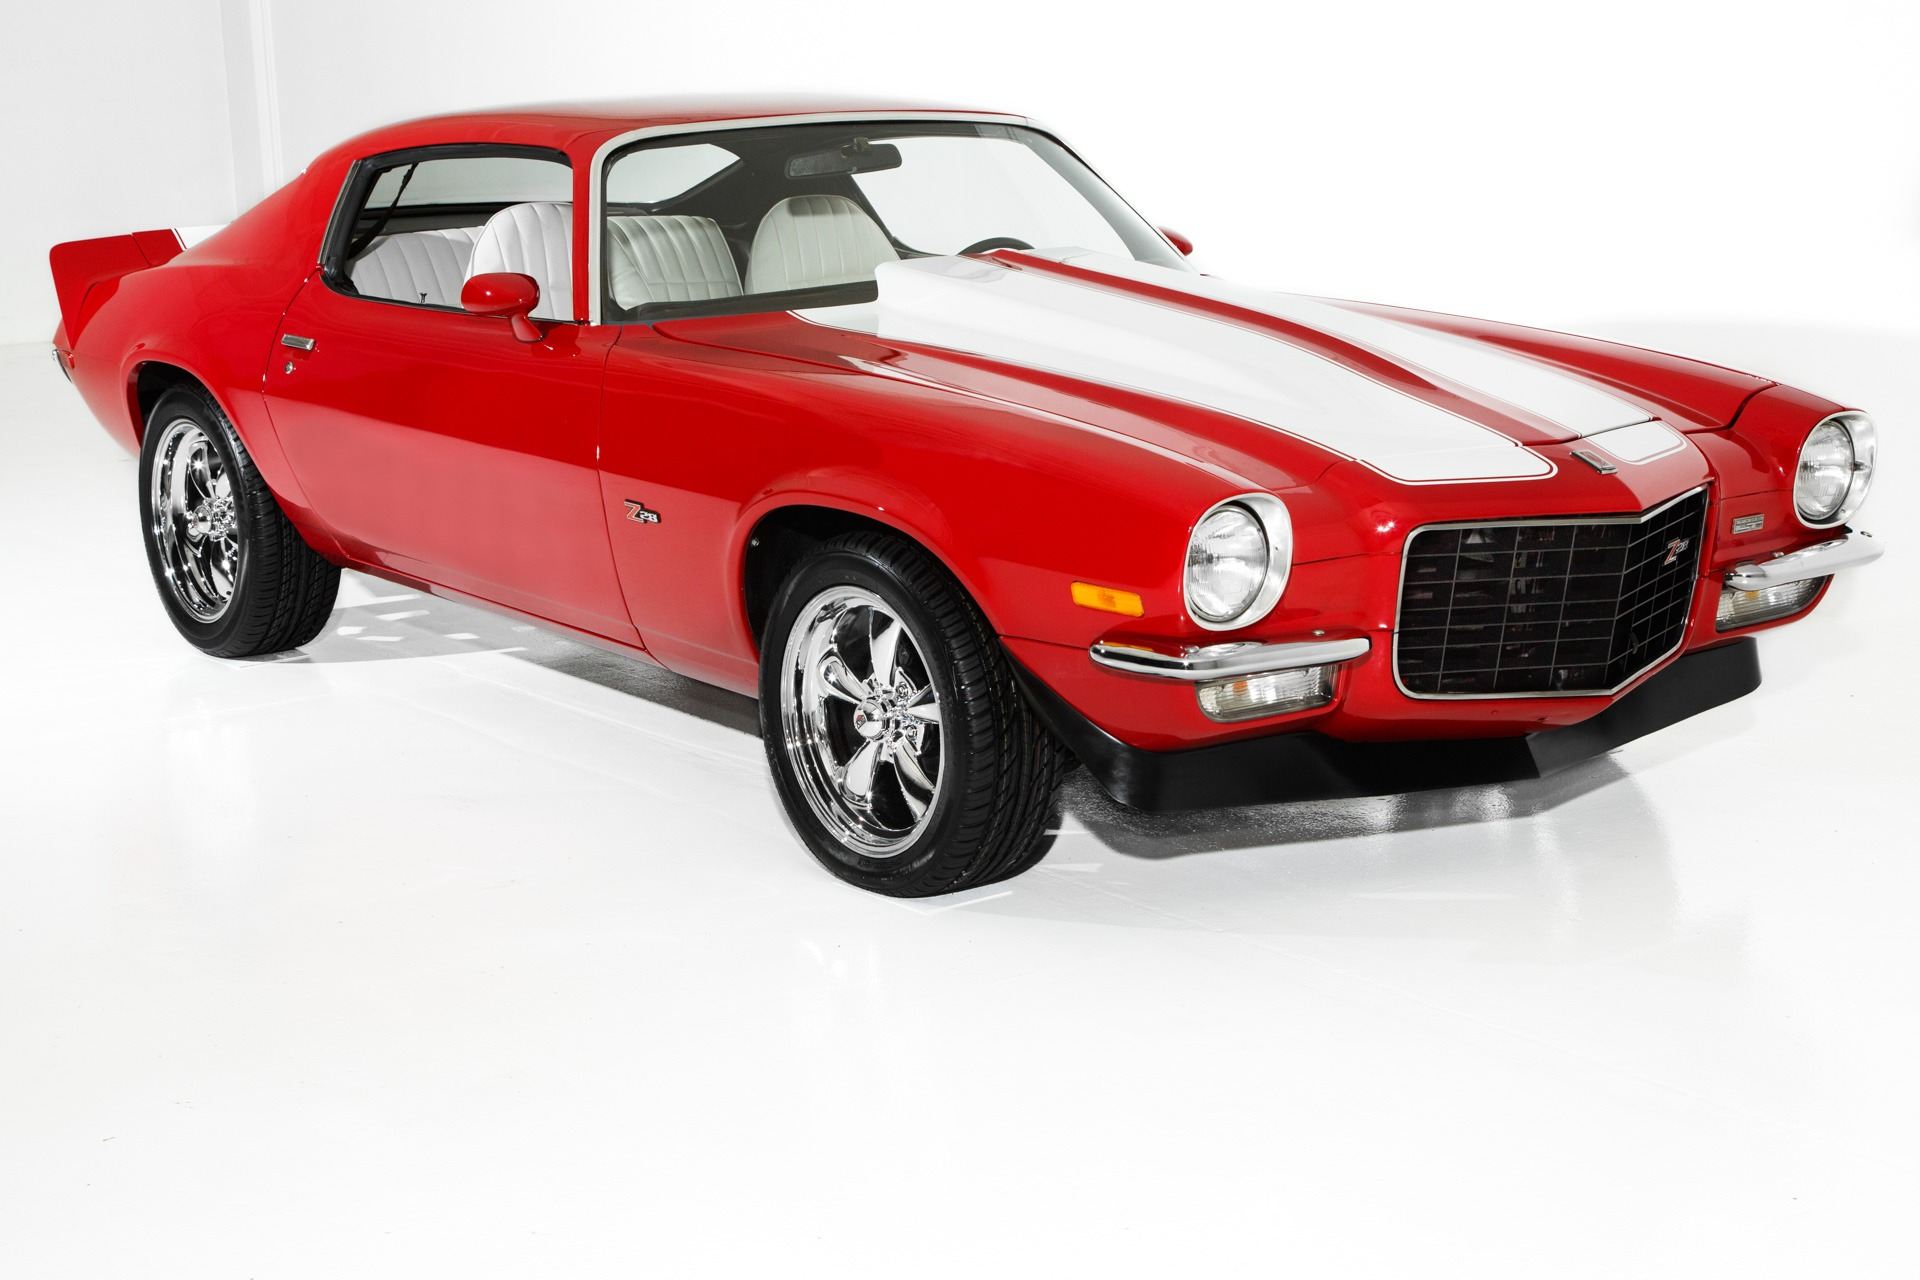 For Sale Used 1973 Chevrolet Camaro SS options, 396, Chrome | American Dream Machines Des Moines IA 50309